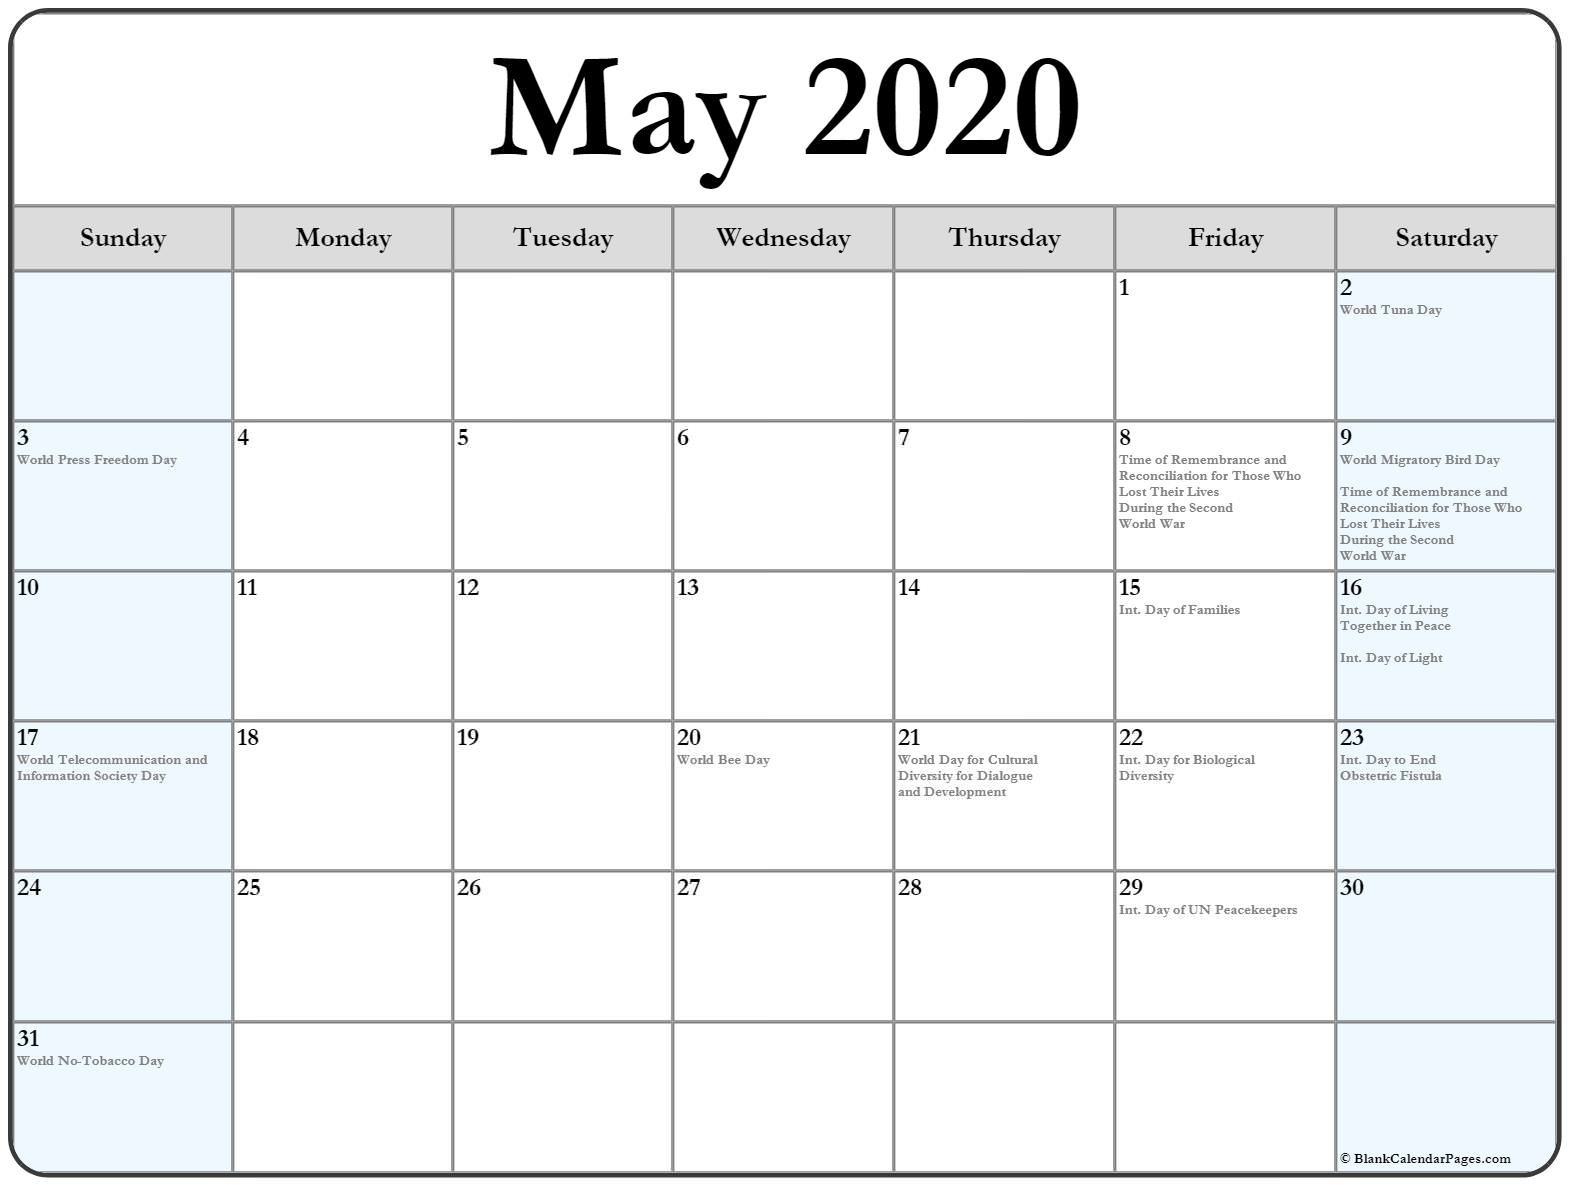 Free Printable Monthly Calendar 2020 with Holidays Collection Of May 2020 Calendars with Holidays